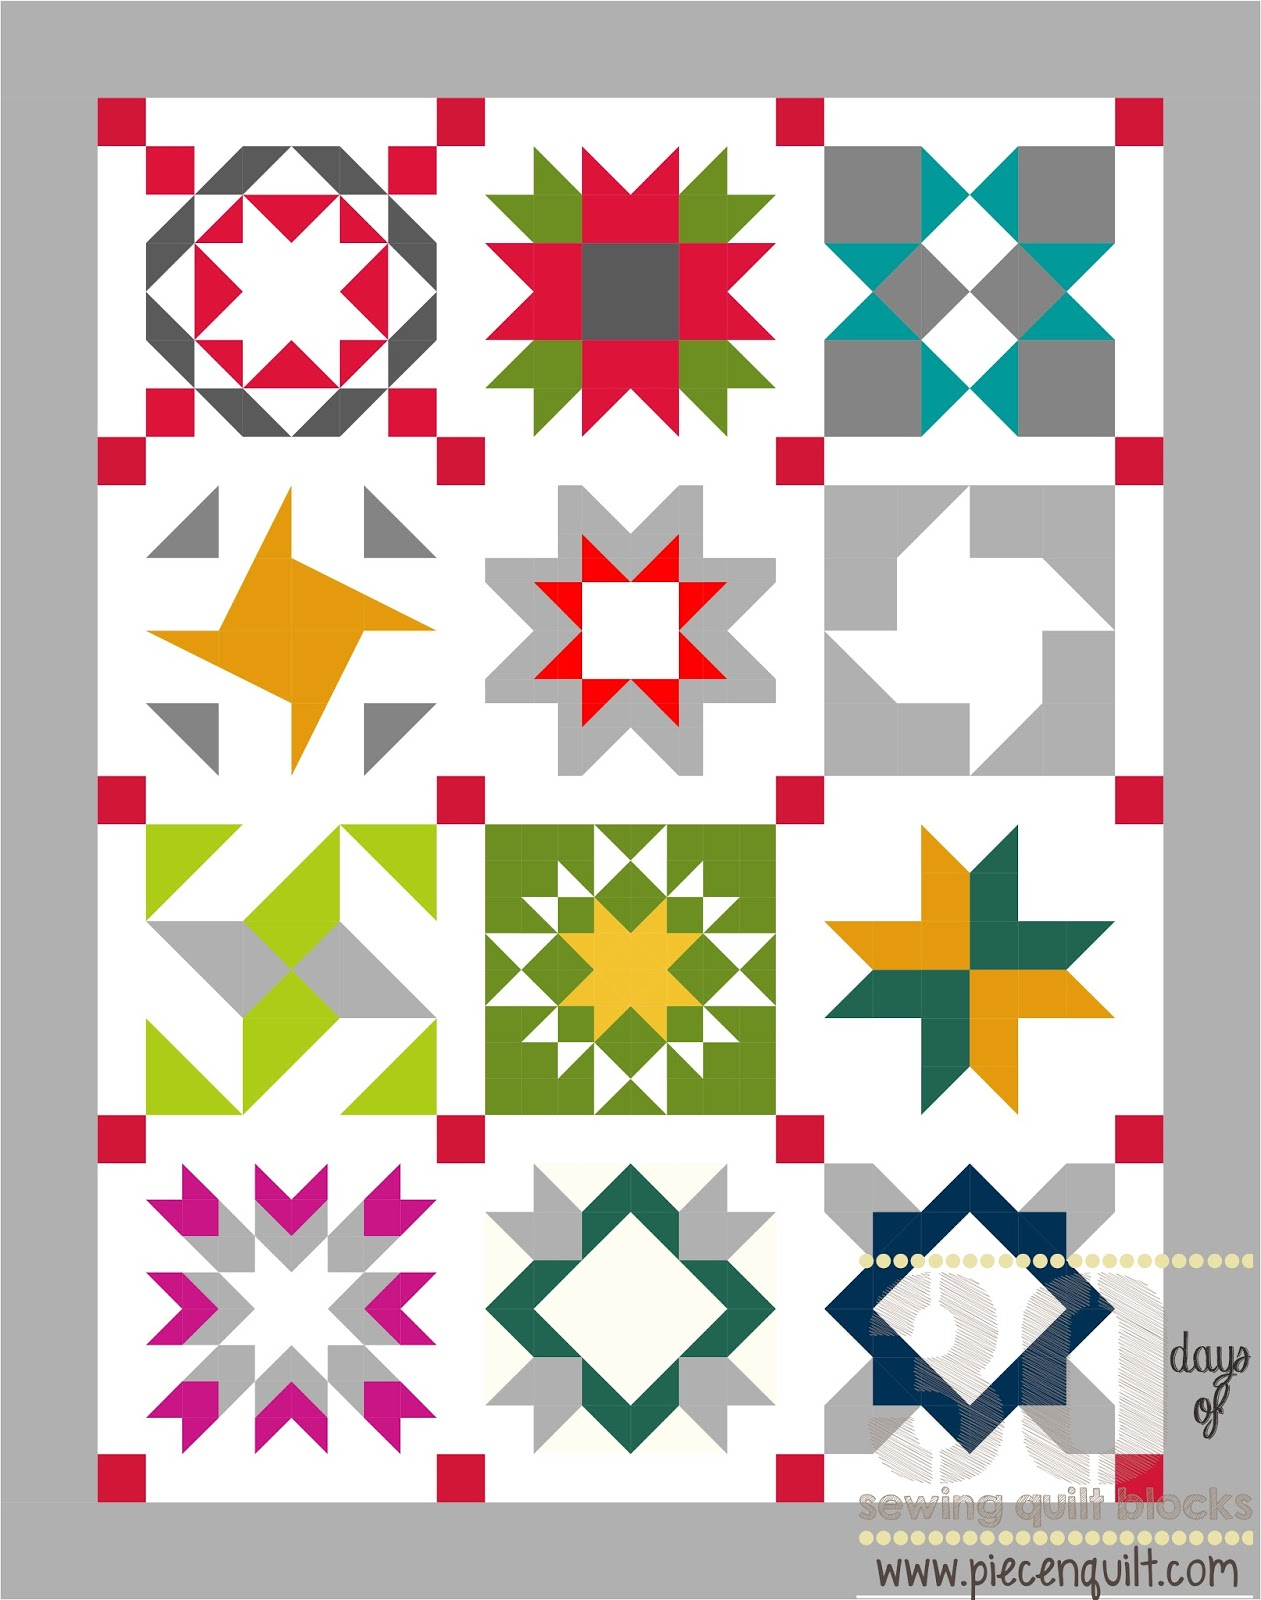 Piece N Quilt: 30 Days of Sewing Quilt Blocks - Star Sampler